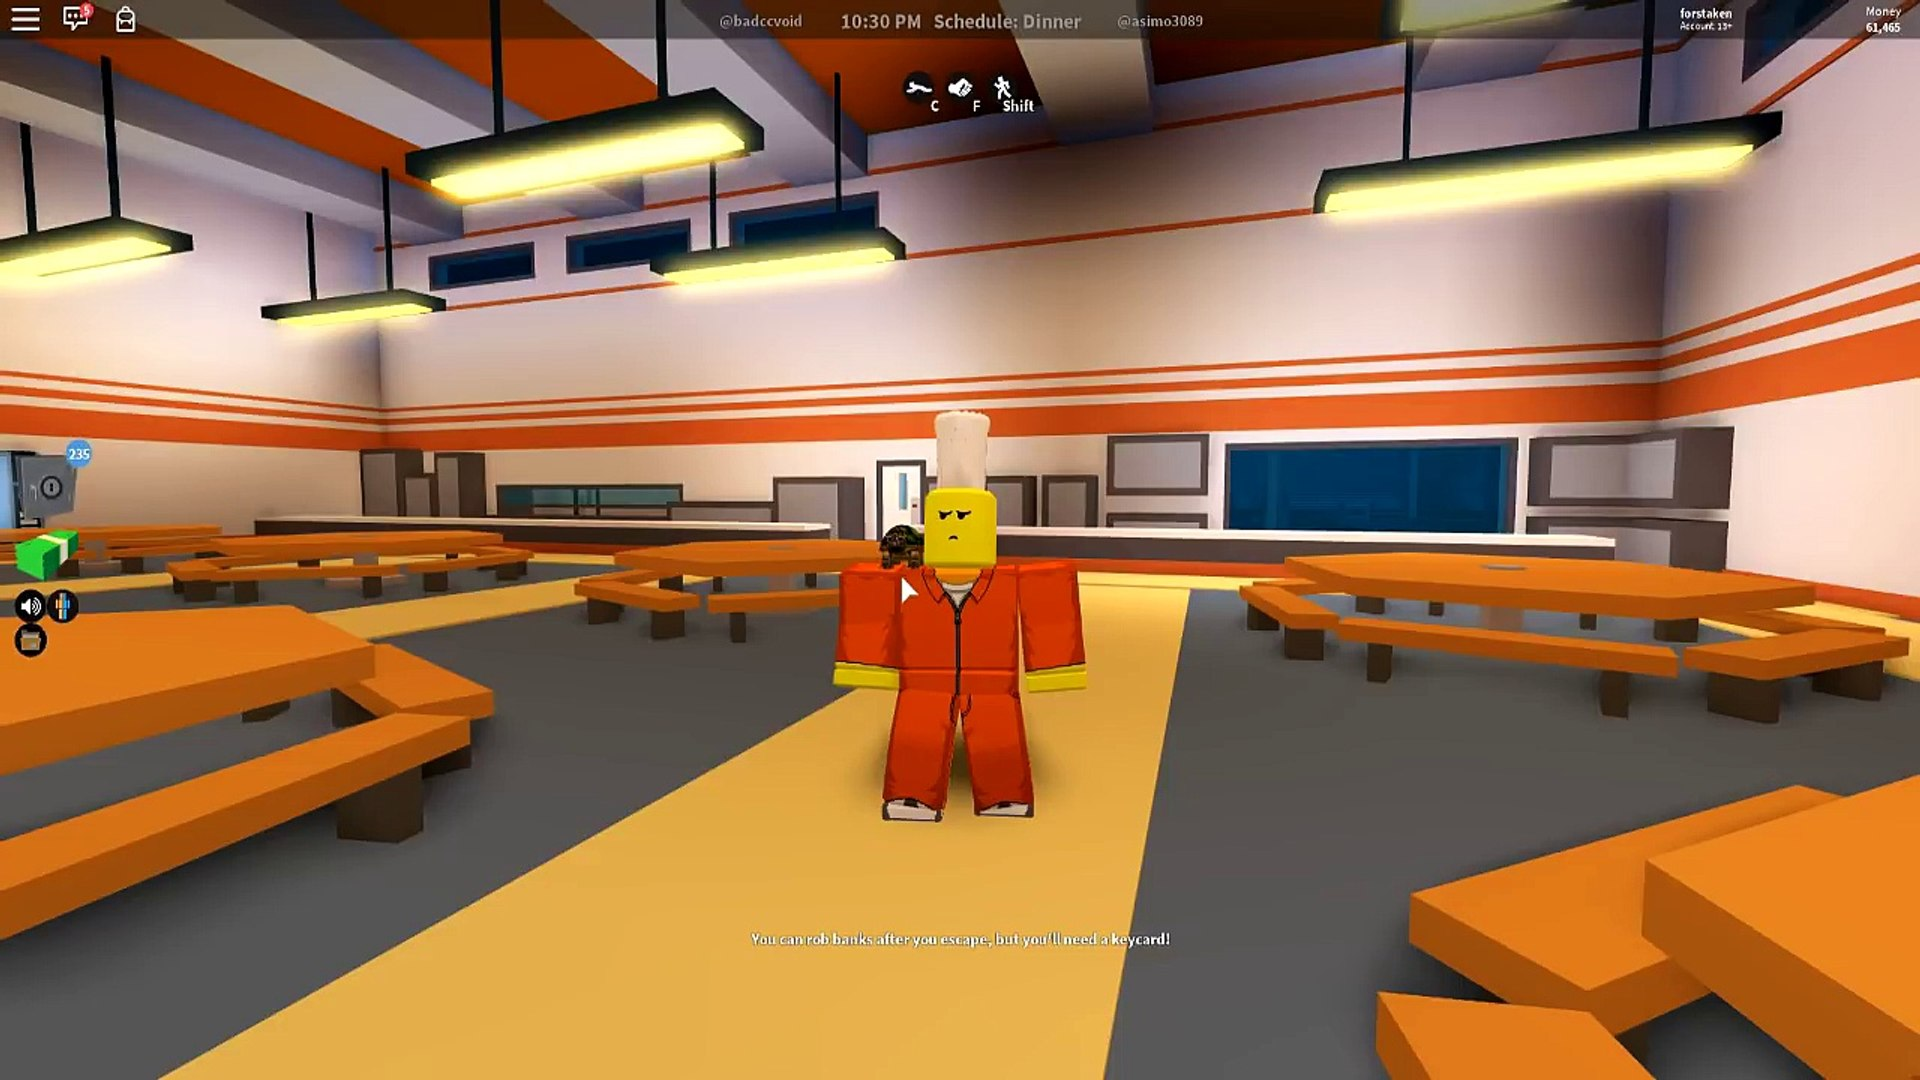 Theres An Issue With The New Jewelry Store Roblox Jailbreak Theres An Issue With The New Jewelry Store Roblox Jailbreak Video Dailymotion